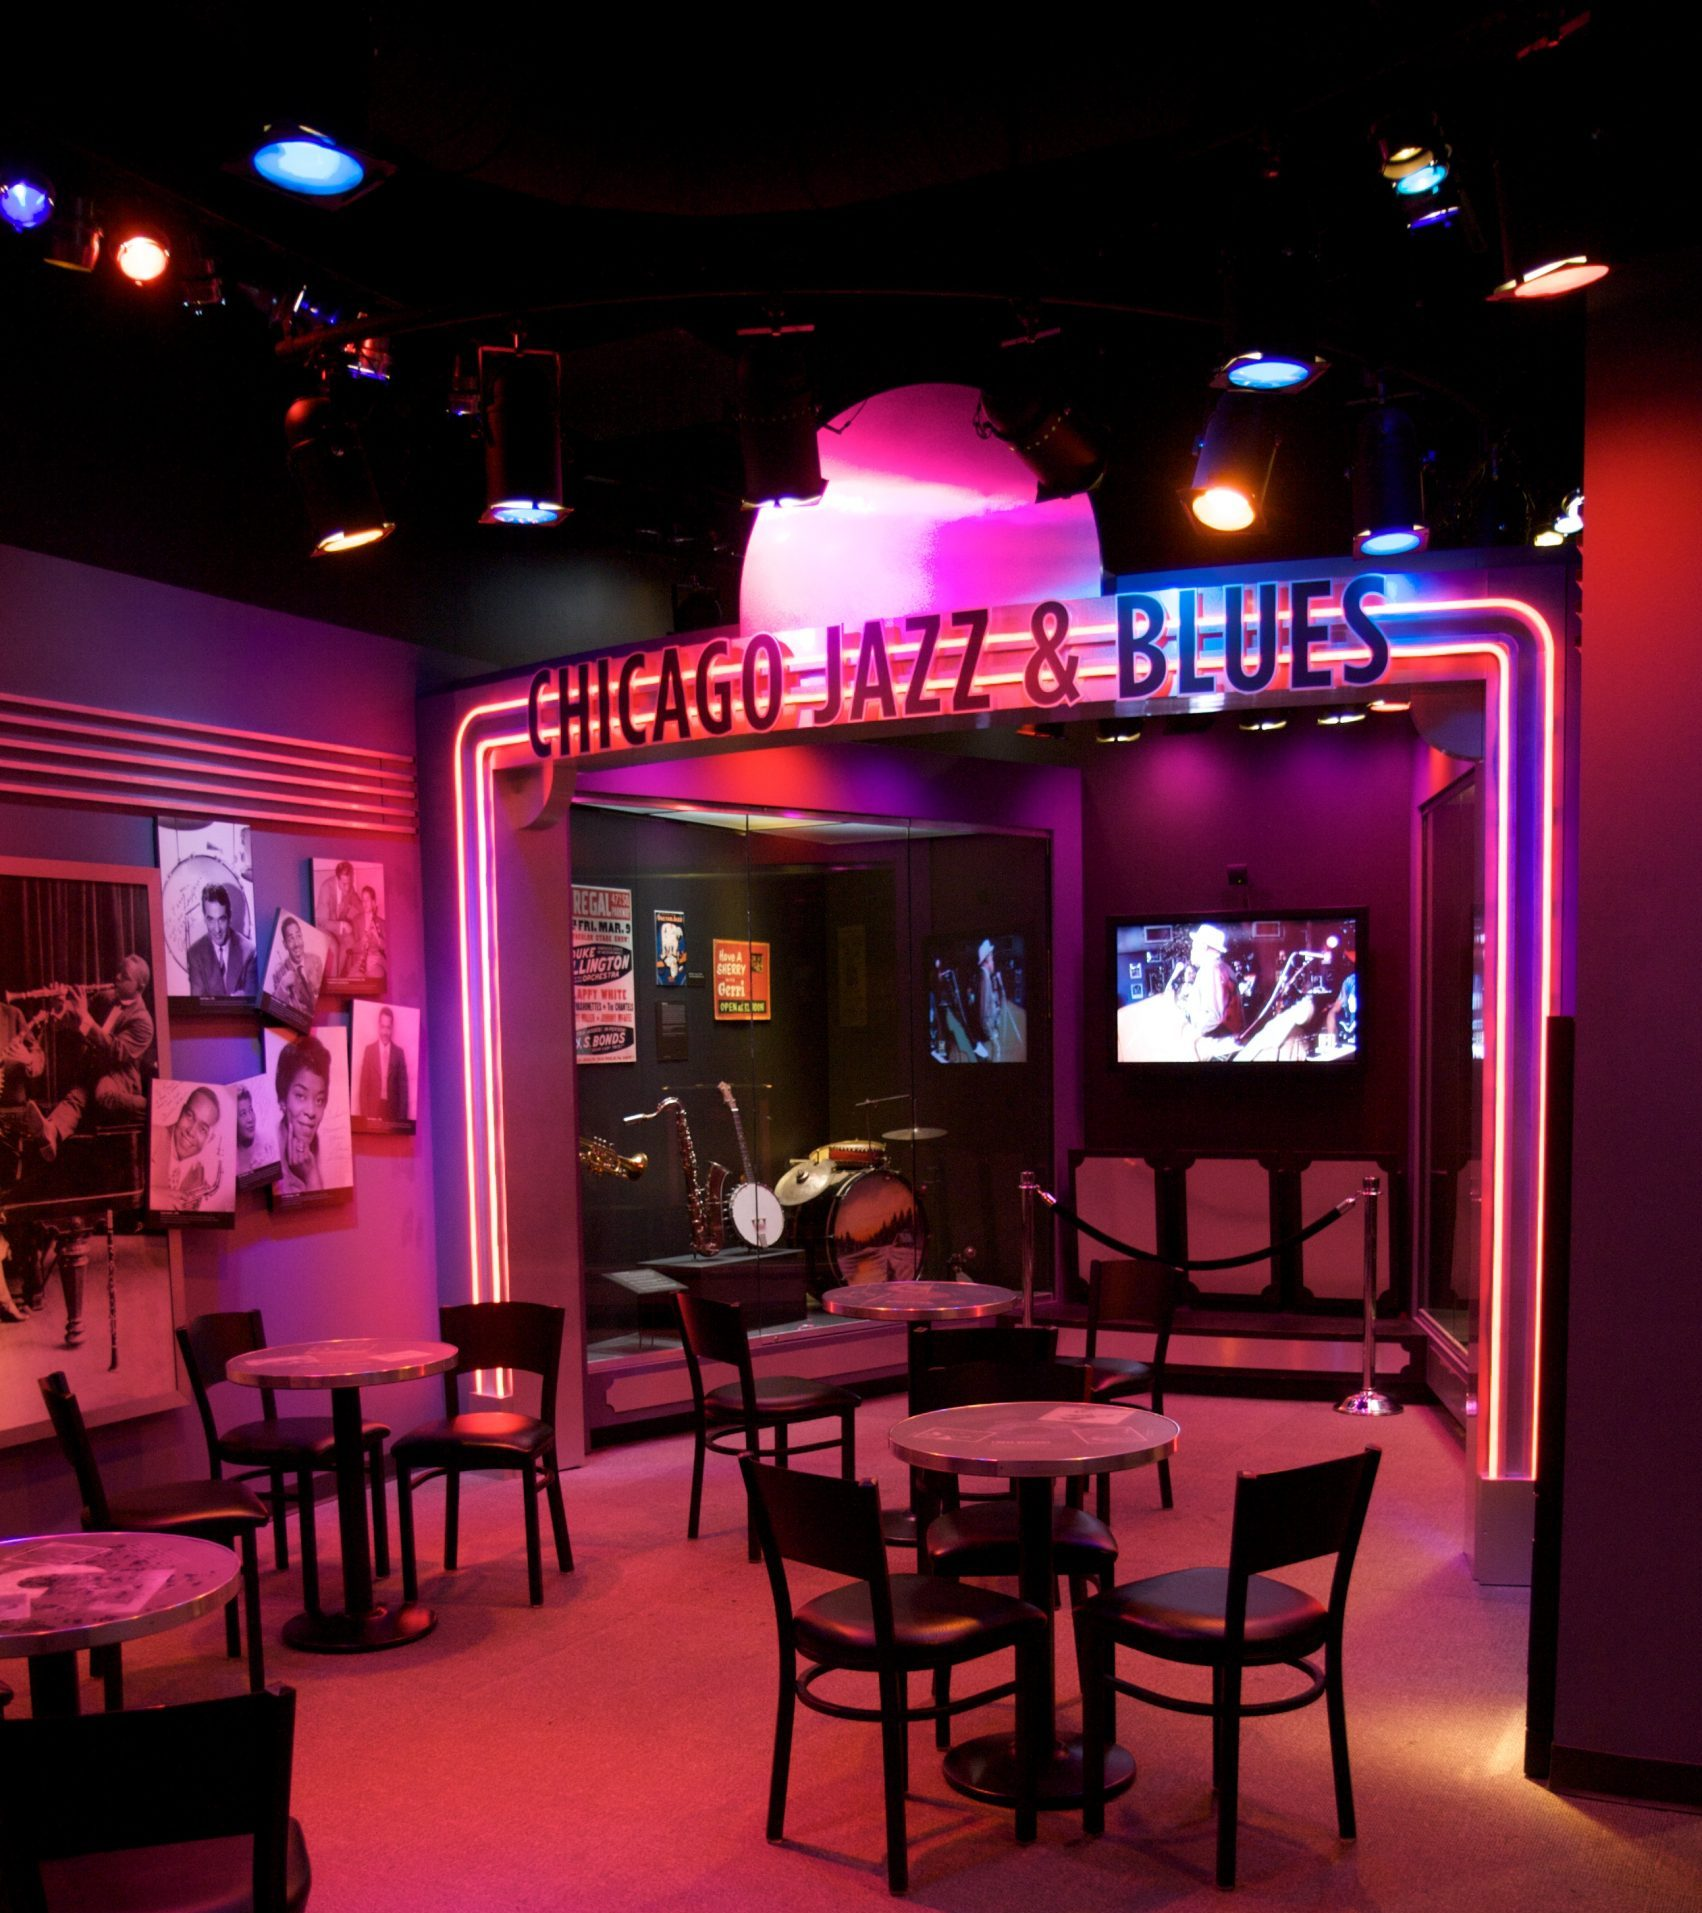 Chicago history museum jazz club date idea